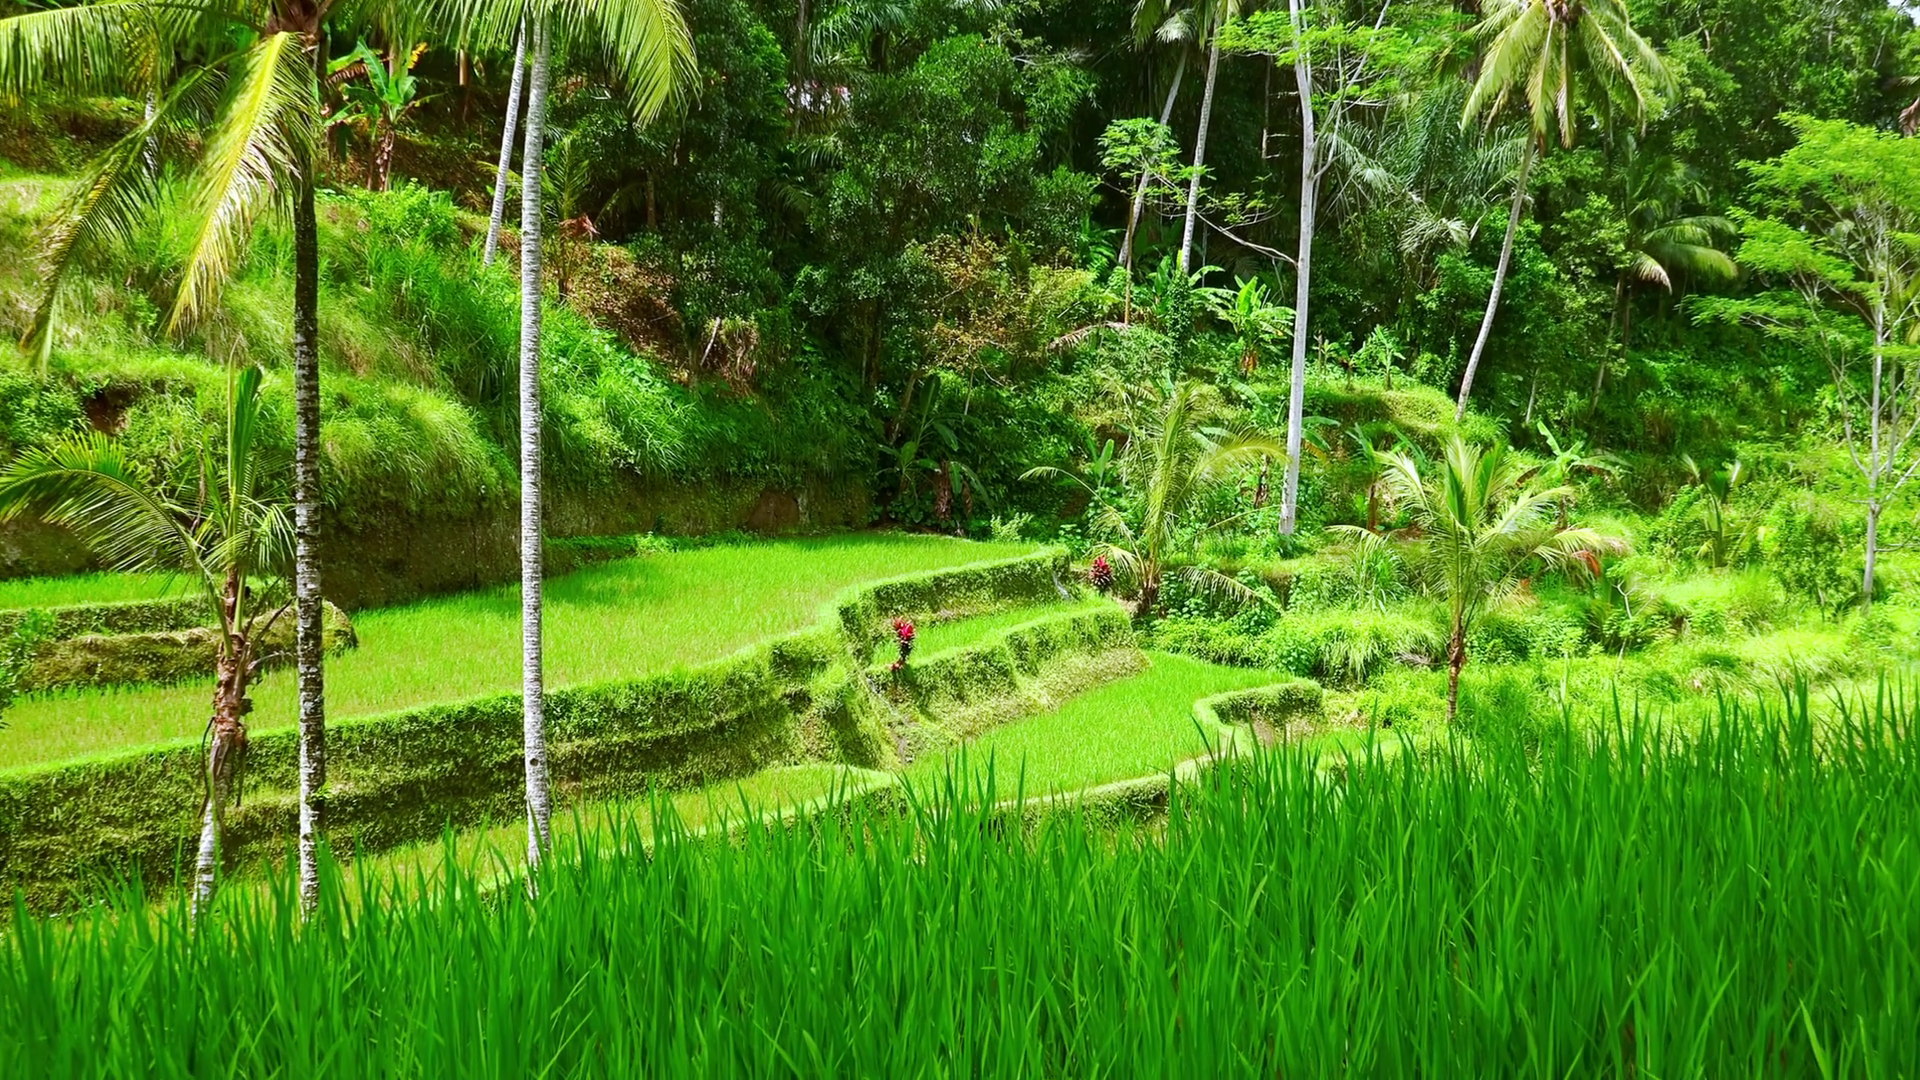 Well groomed rice terraces covered in vegetation against thick 1920x1080